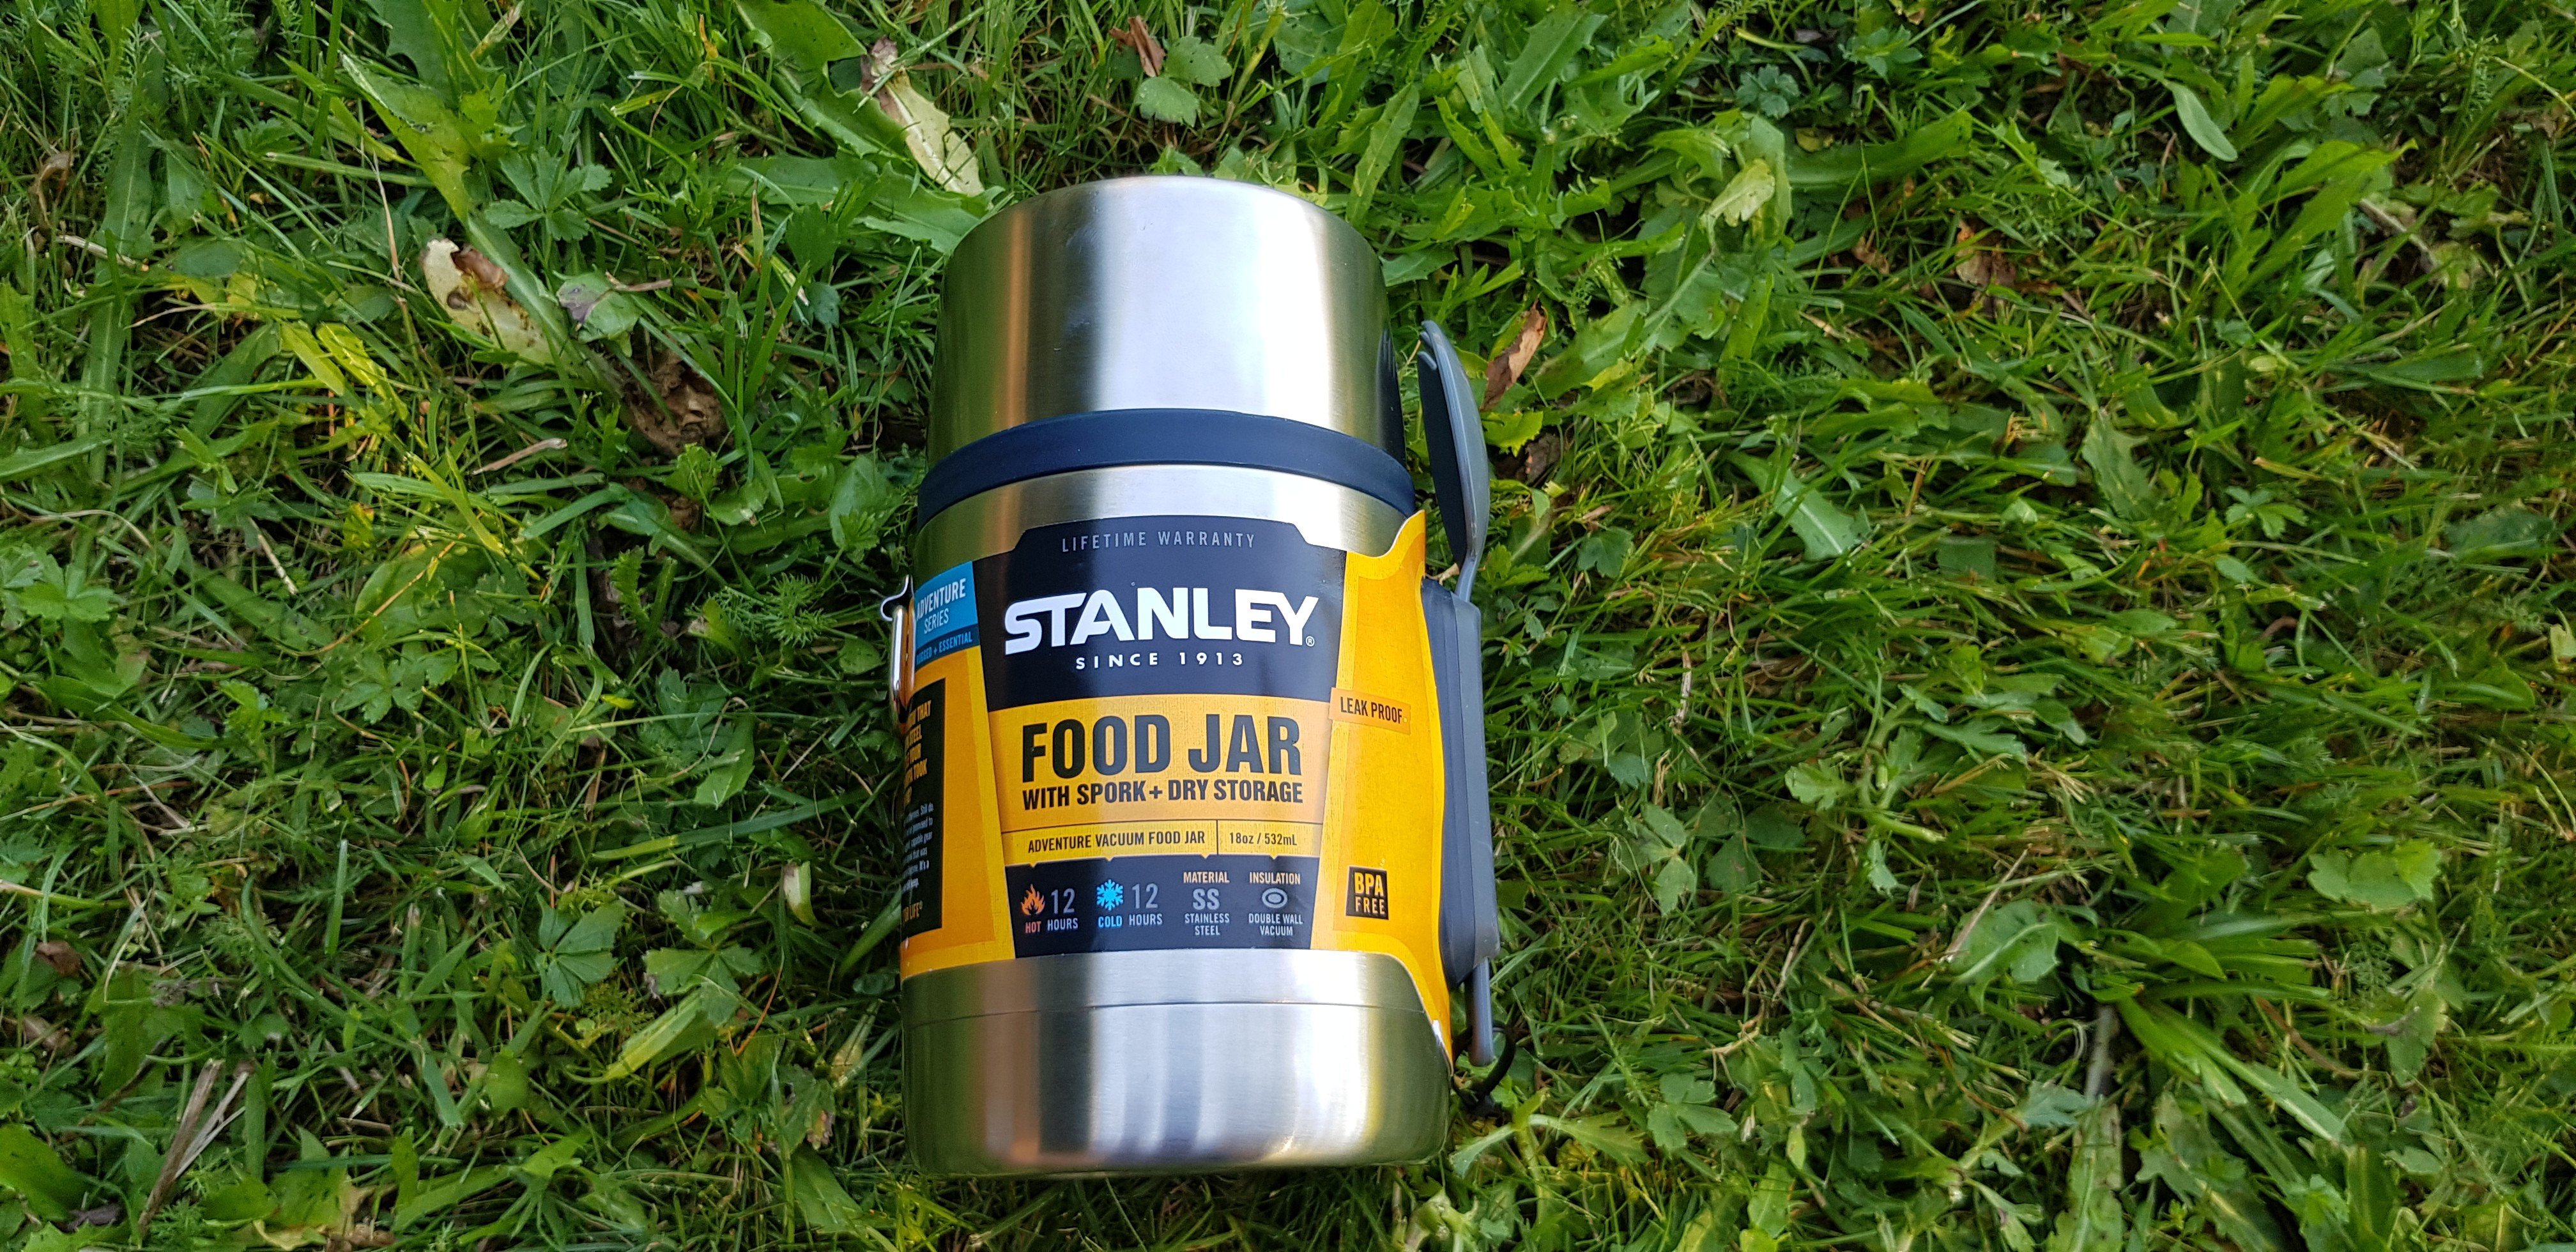 EXPO Stanley Food Jar with Spork